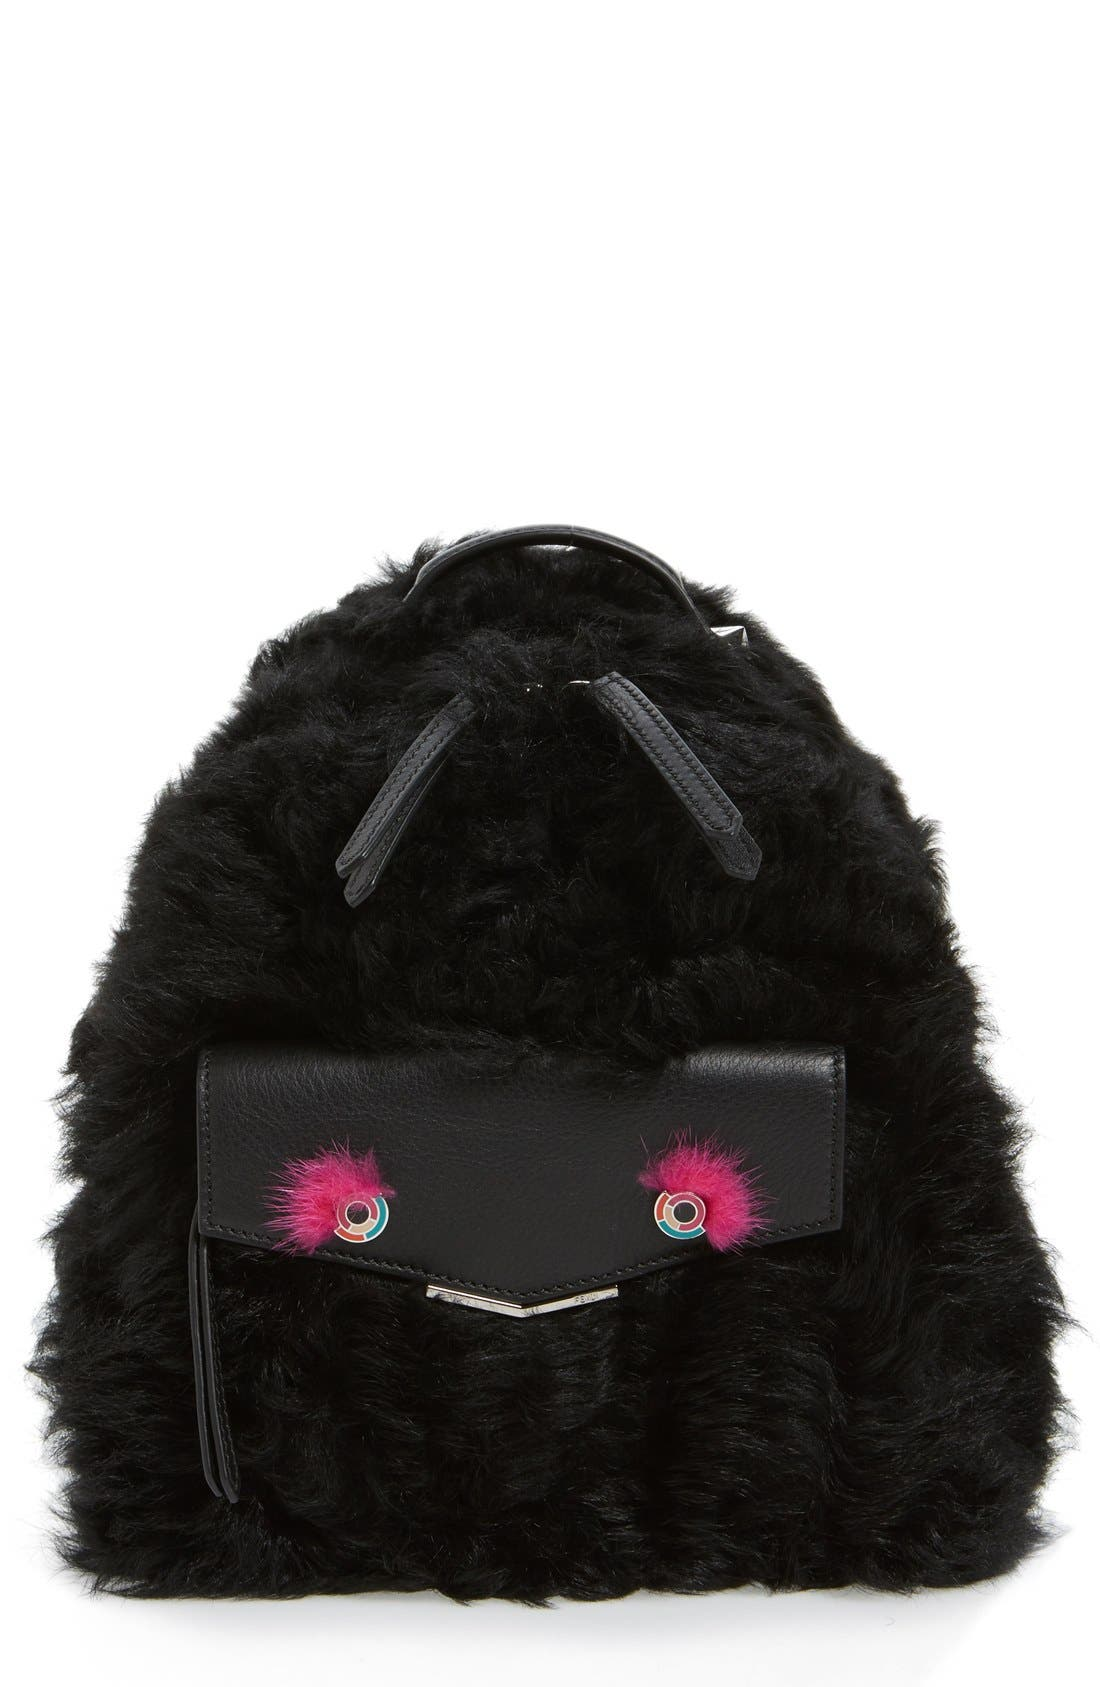 'Mini Monster' Genuine Shearling & Genuine Mink Fur Backpack,                             Main thumbnail 1, color,                             Black/ Fuchsia / Palladium